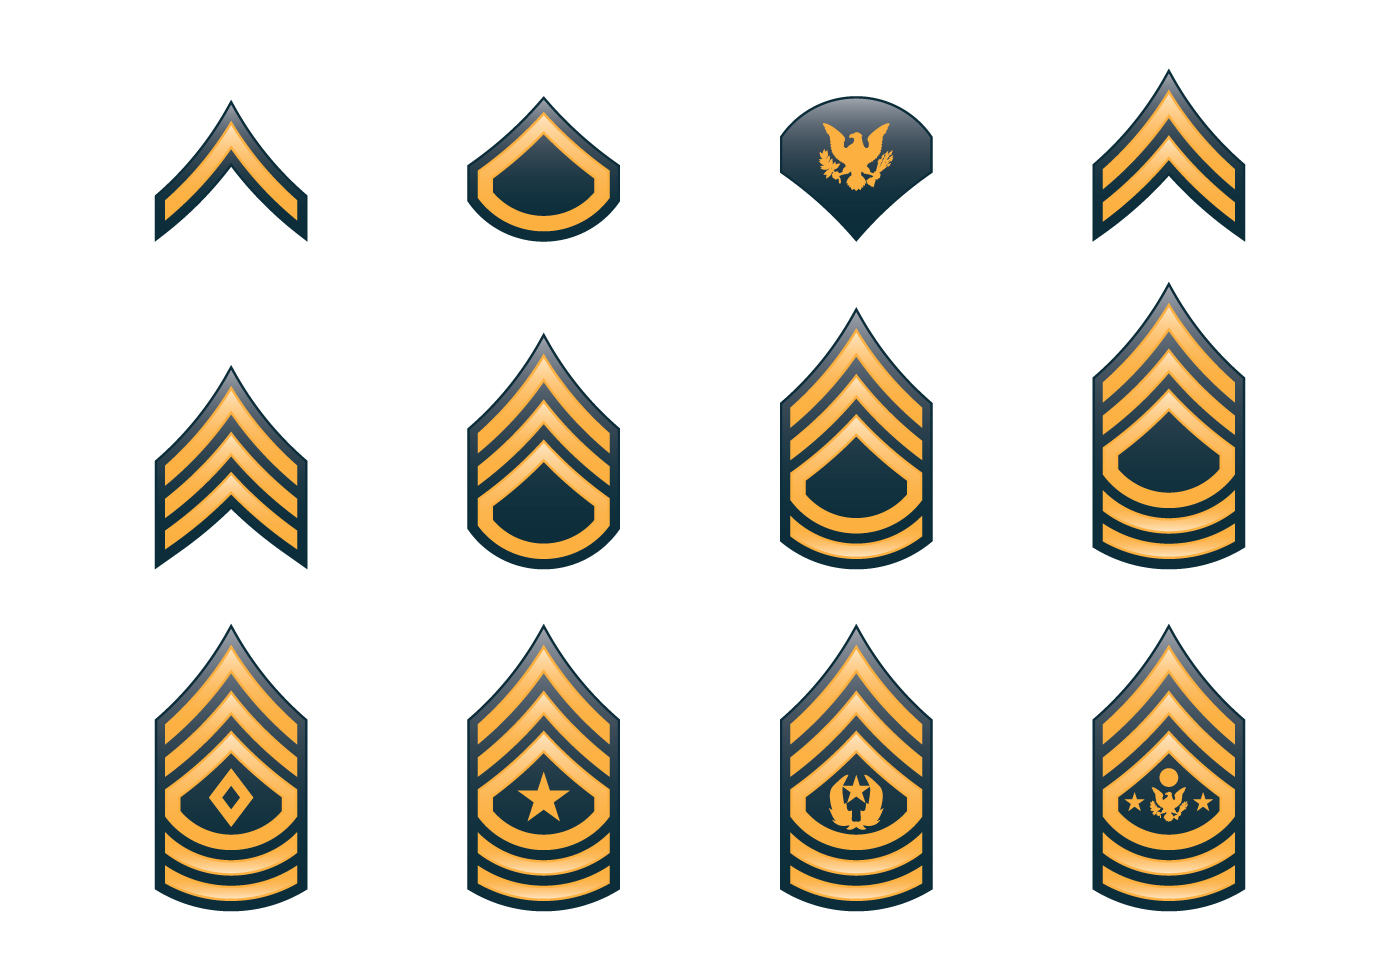 Army Rank Insignia - Download Free Vectors, Clipart ...